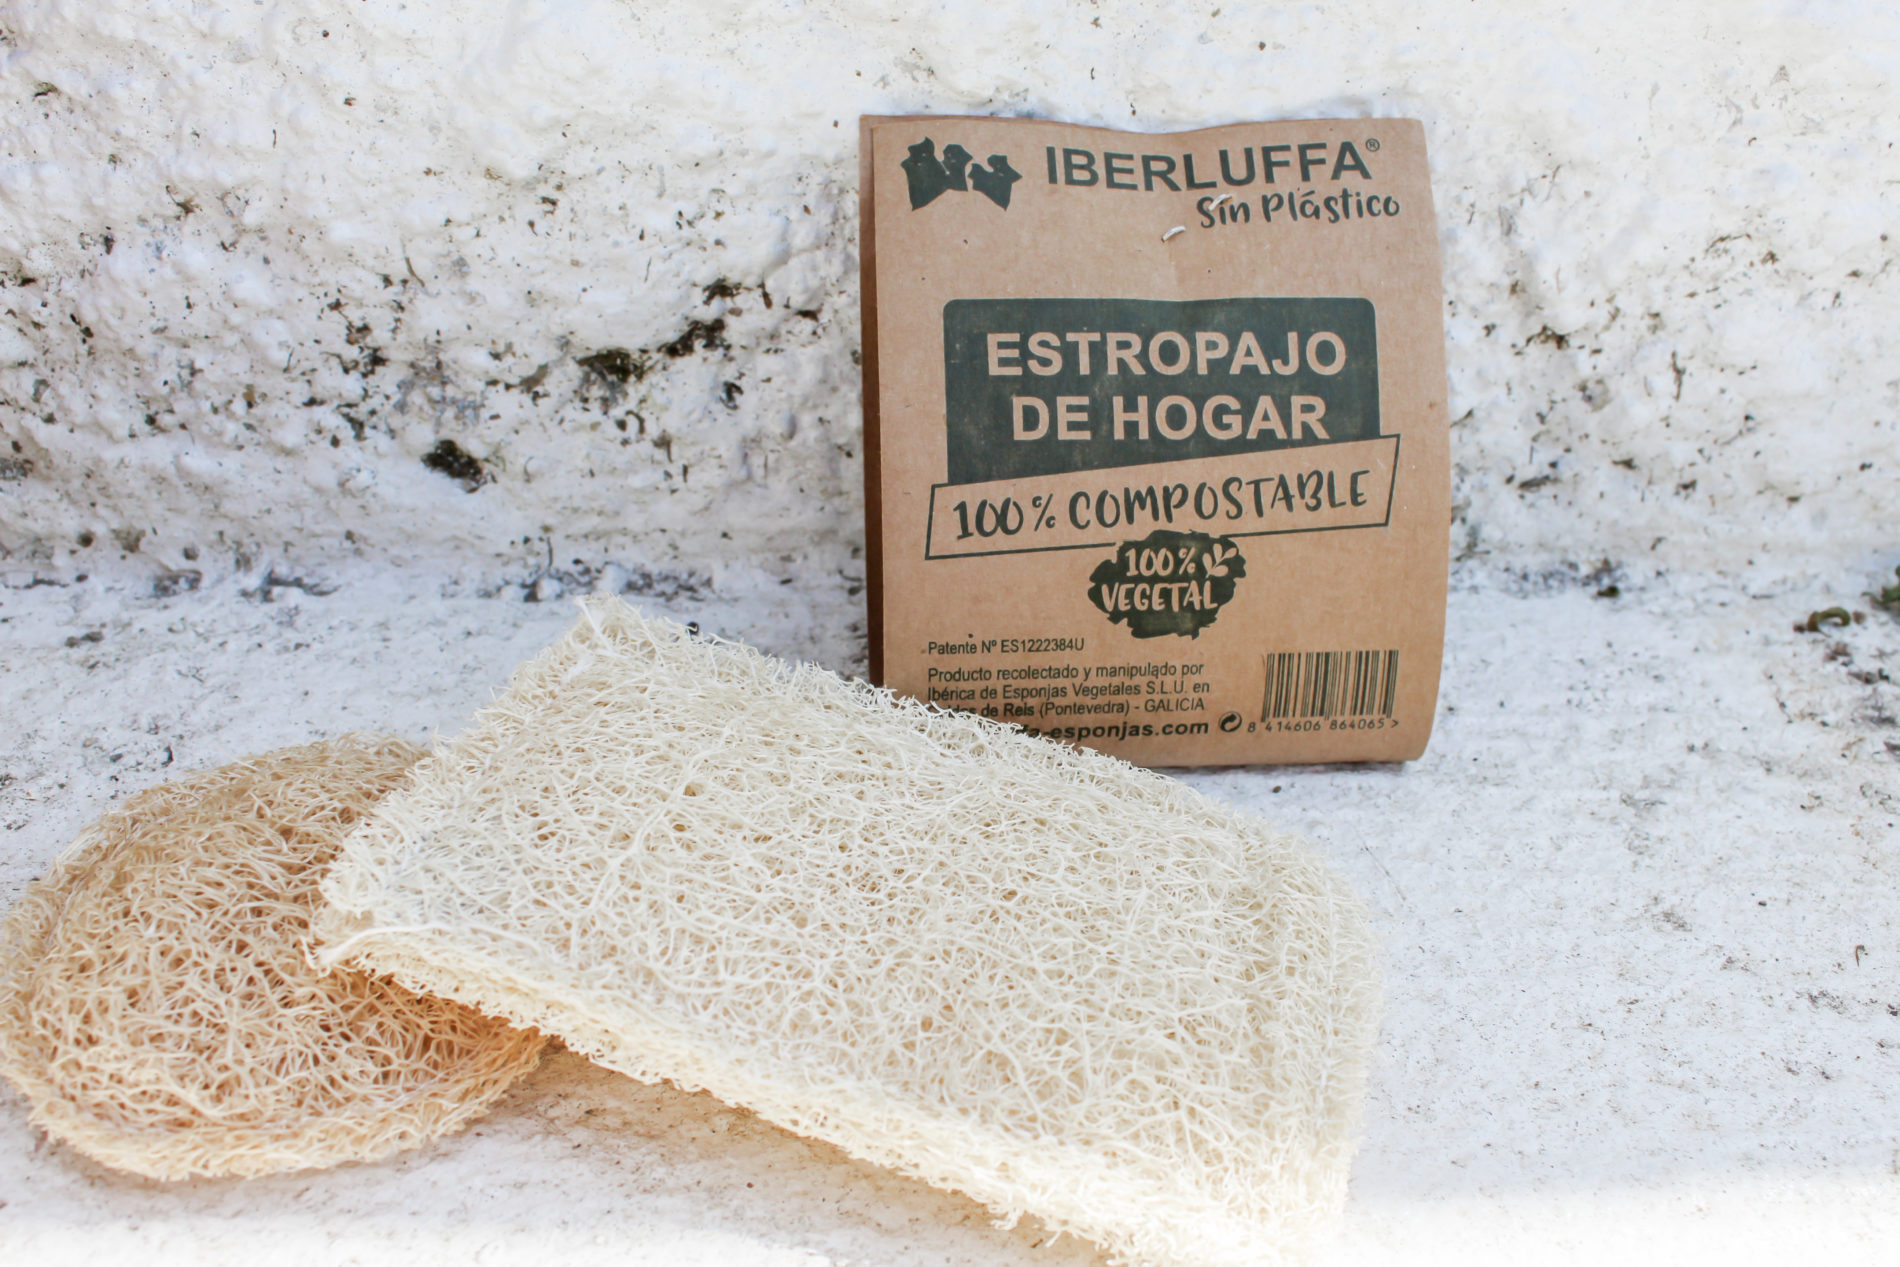 luffa biodegradable estropajo disco exfoliante